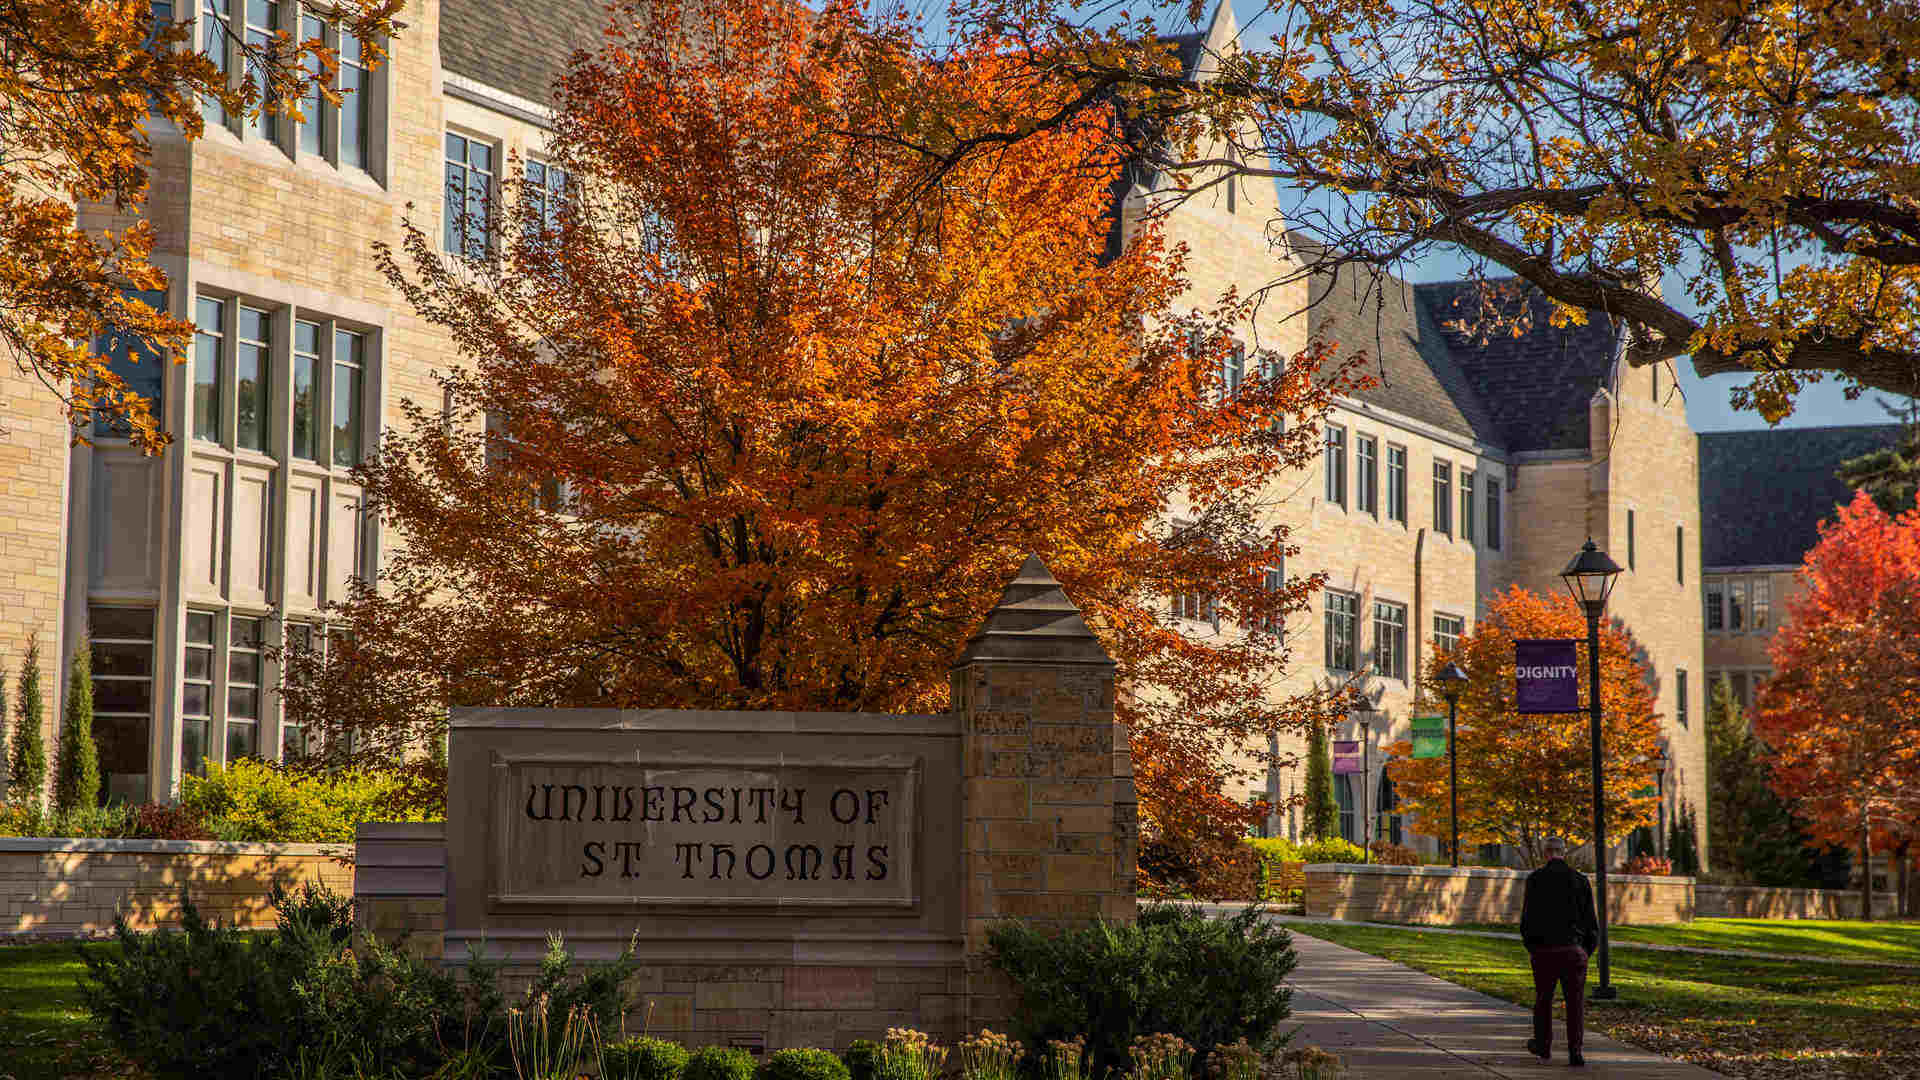 University of St. Thomas sign in front of the Anderson Student Center